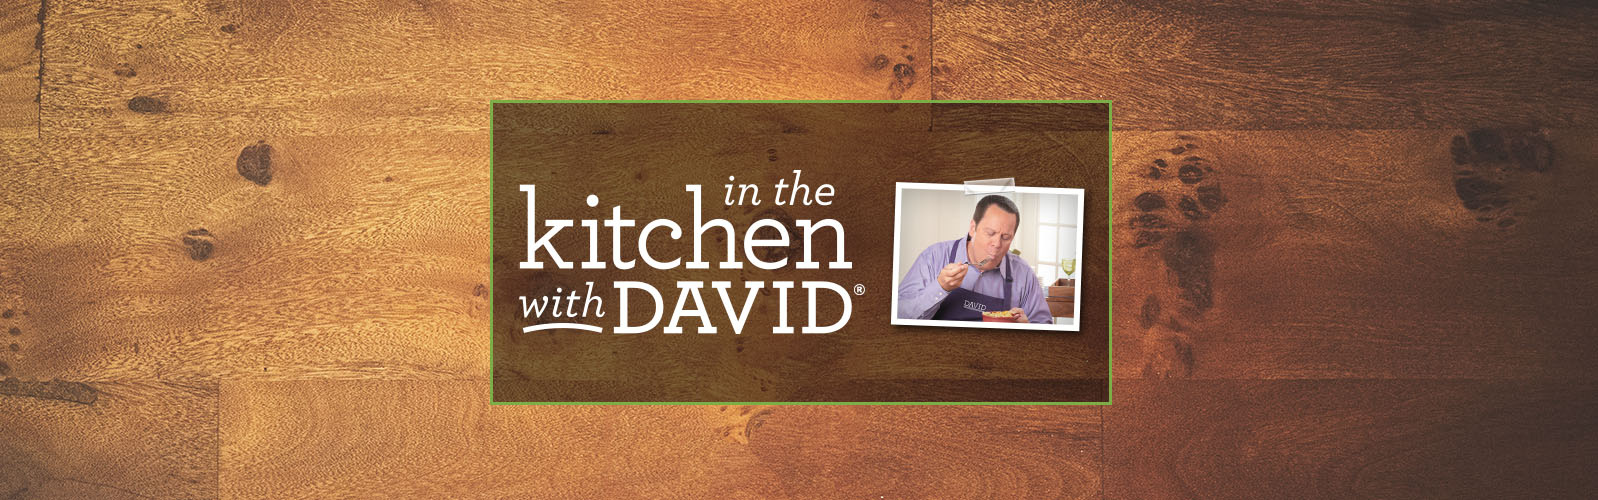 In the Kitchen with David®.  Exciting news, Foodies! I've started working on my third cookbook: In the Kitchen with David: QVC's Resident Foodie Presents Comfort Food Shortcuts.   Stay tuned for sneak peeks and a behind-the-scenes look at the making of this cookbook.